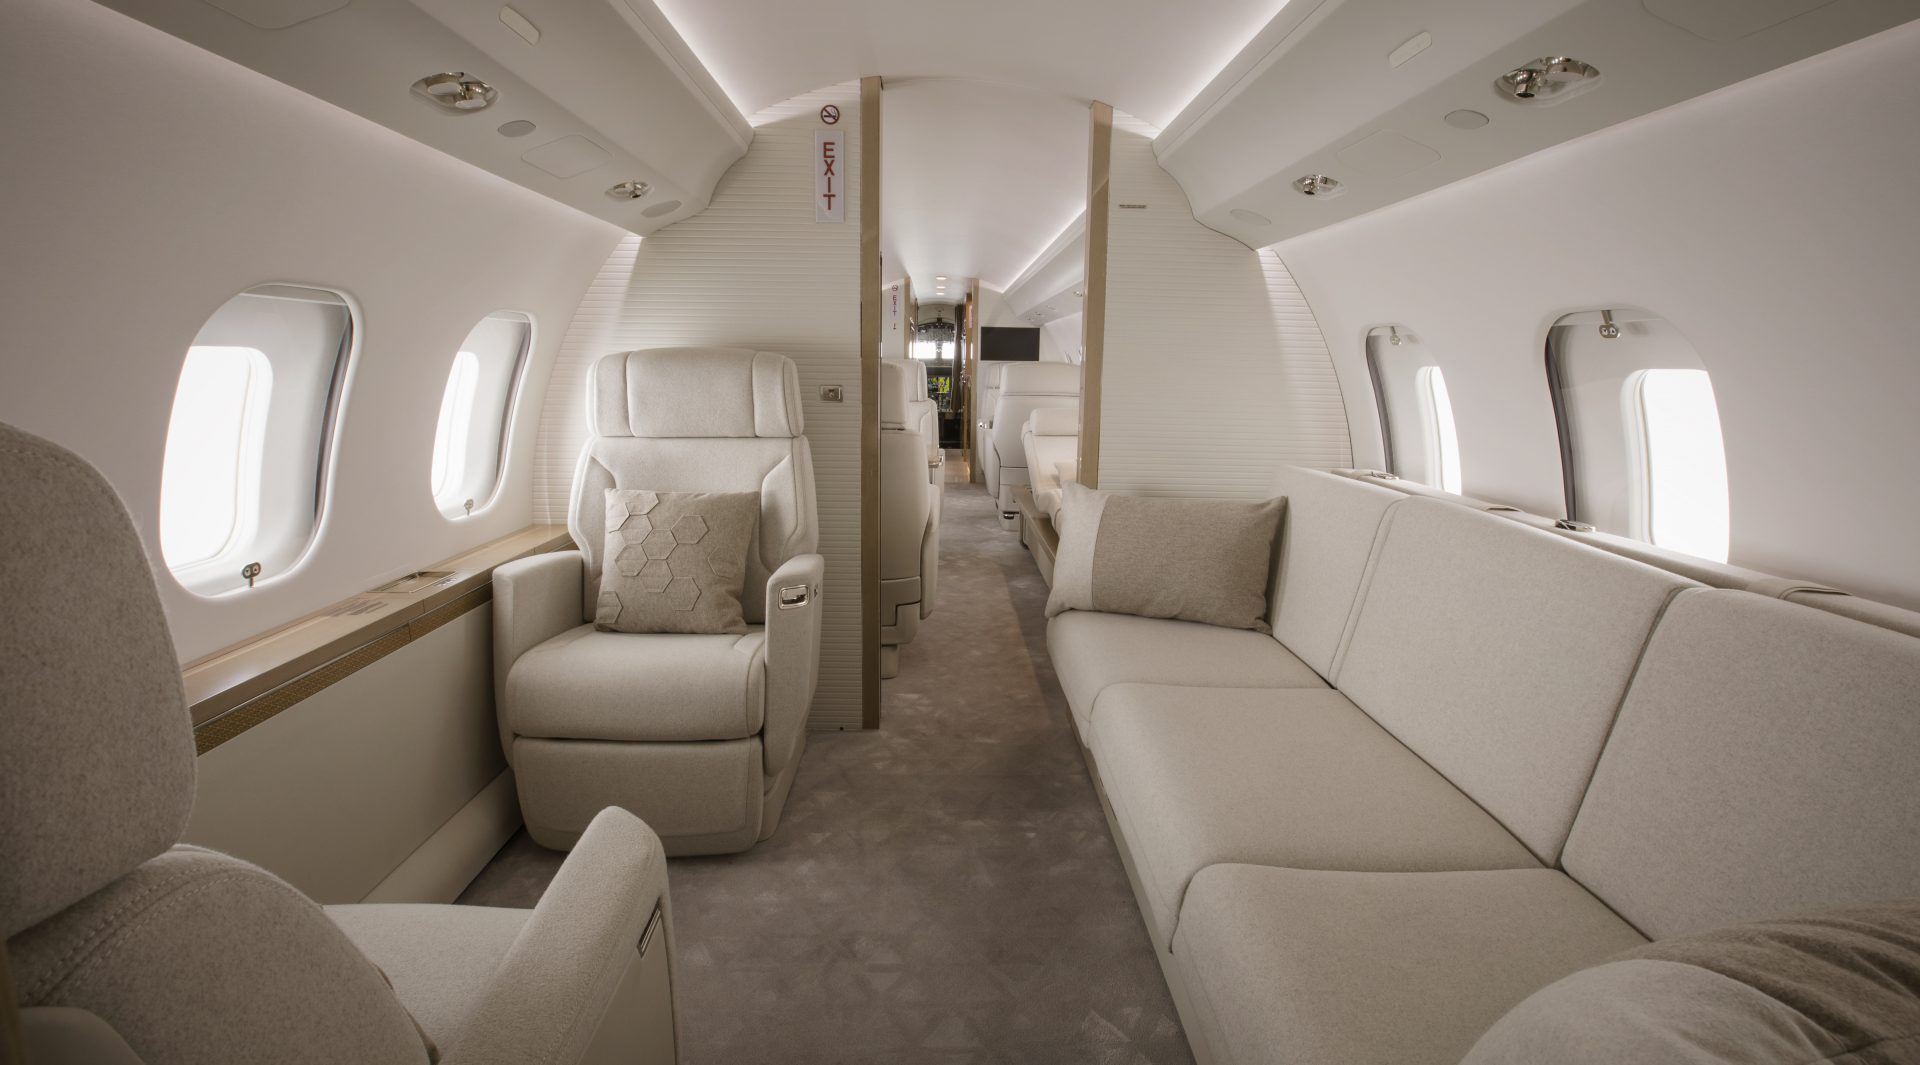 Bombardier Business Aircraft